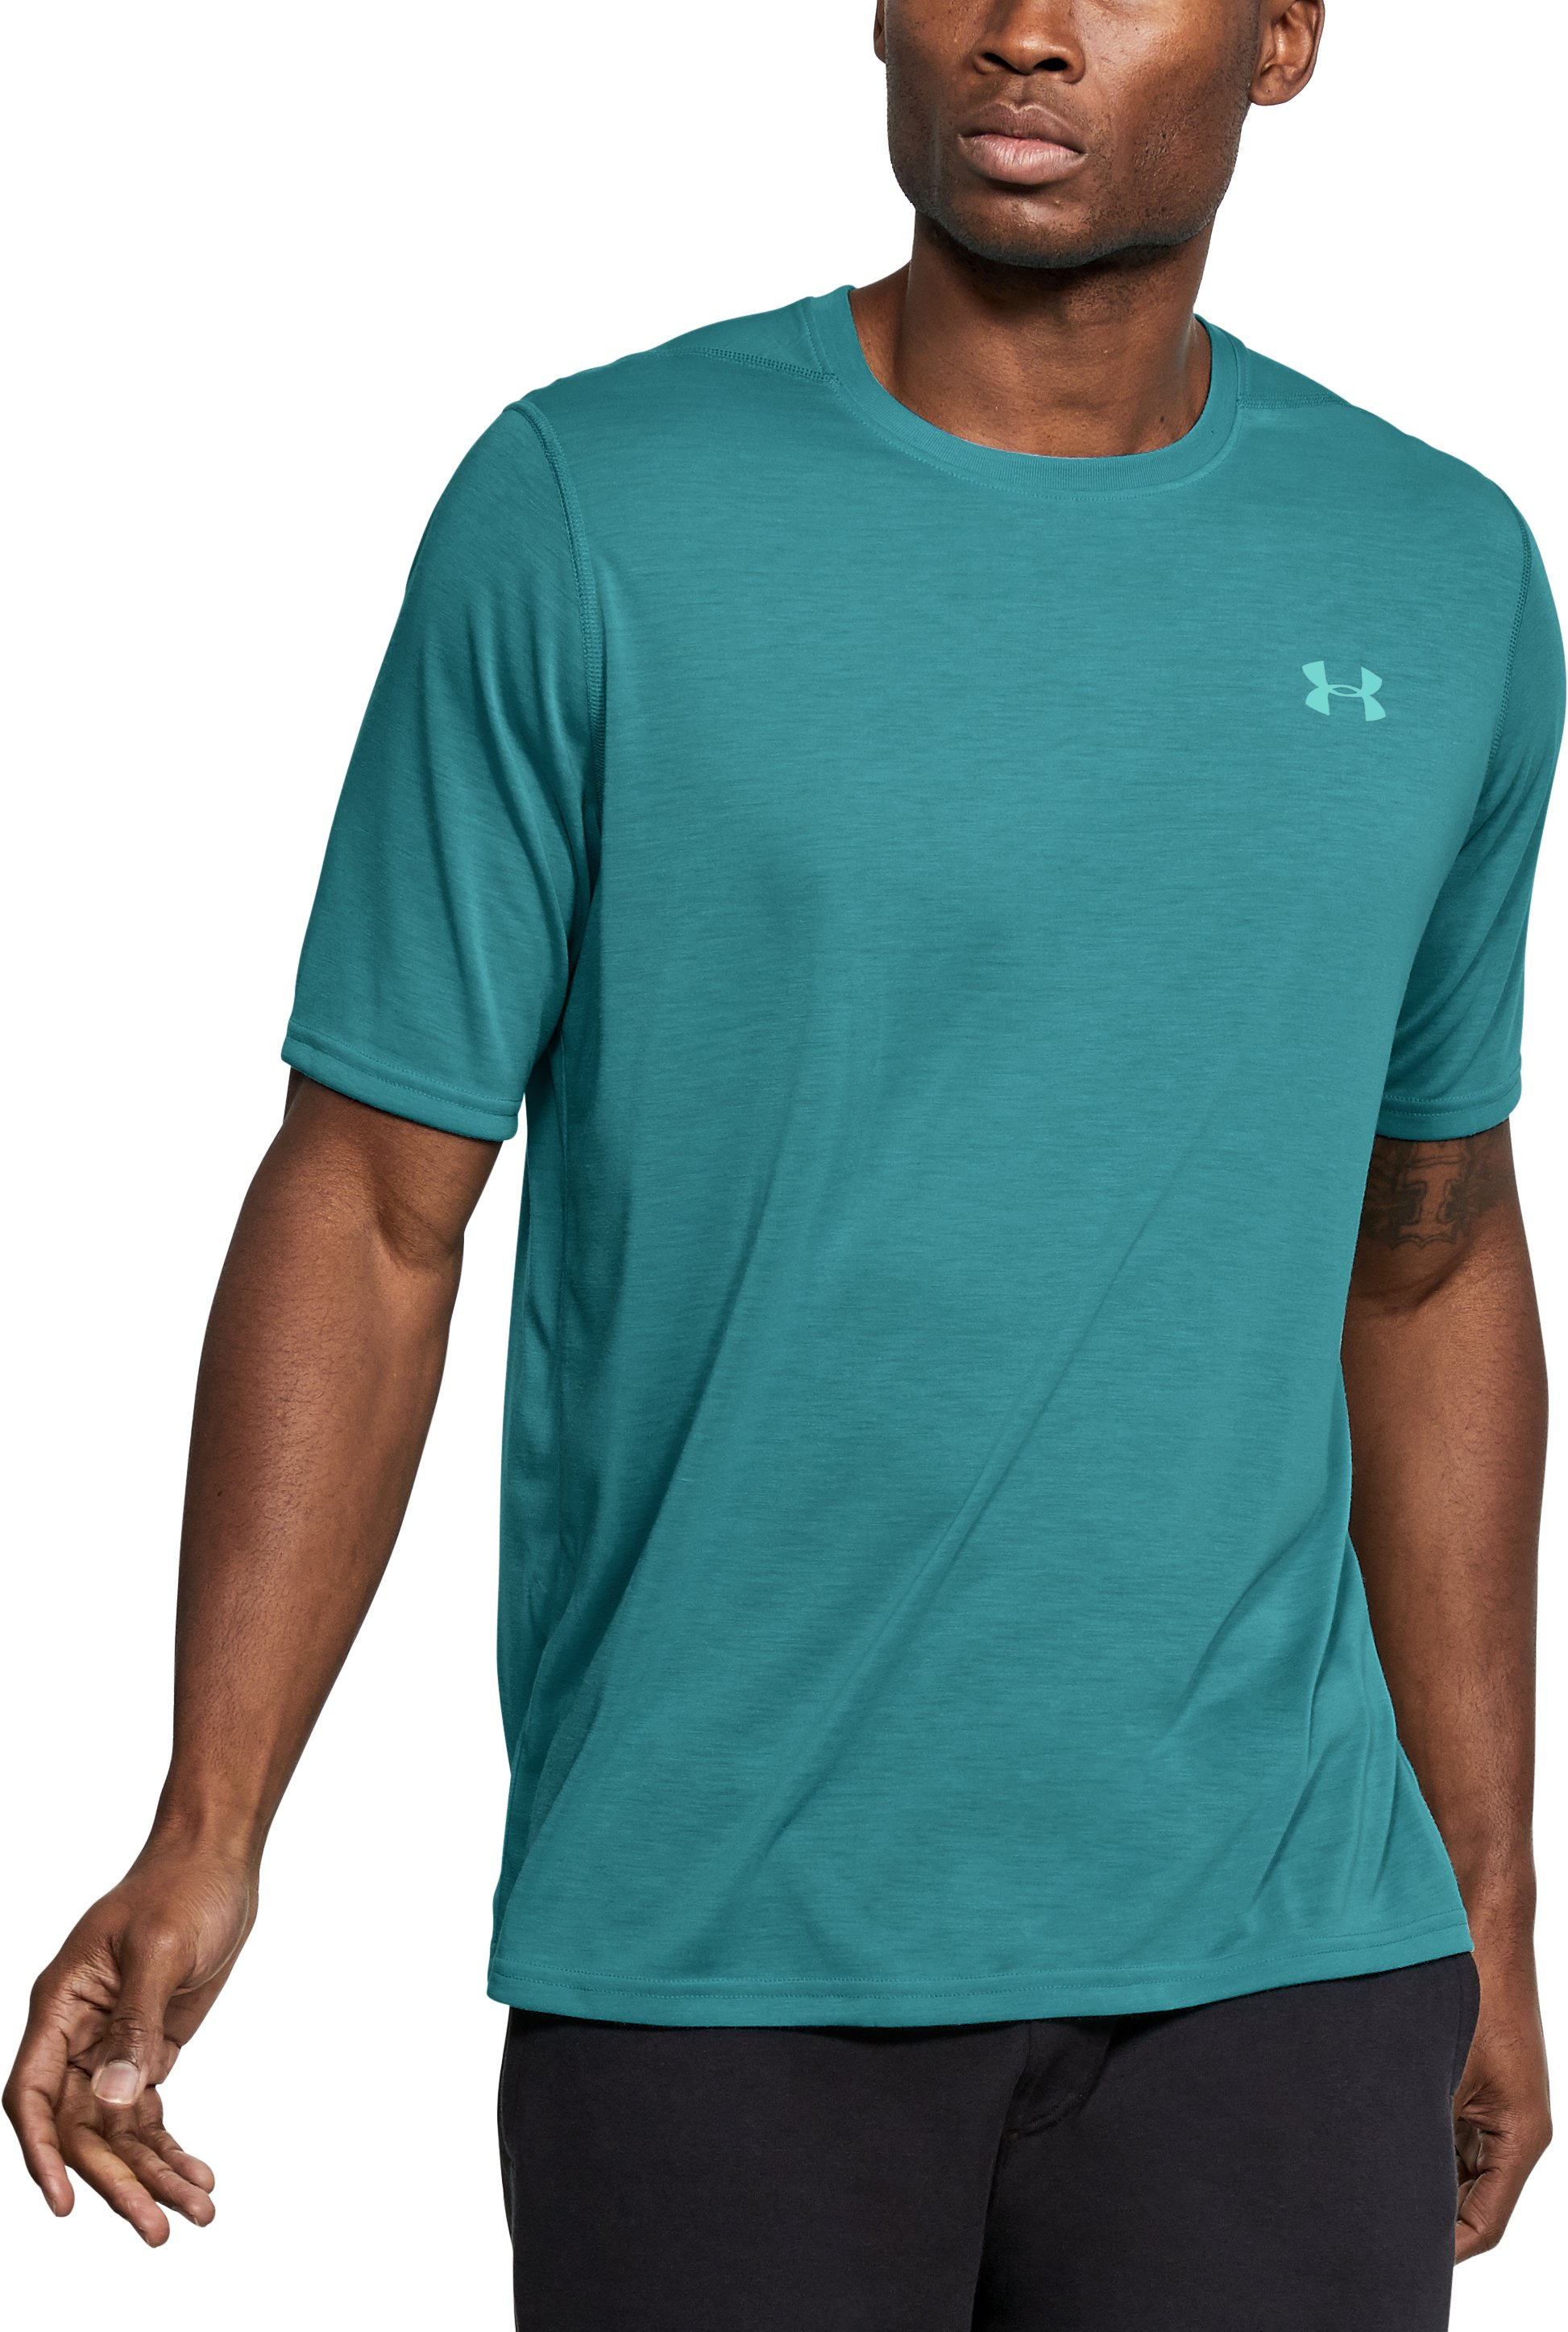 Men's UA Threadborne Siro T-Shirt, Desert Sky